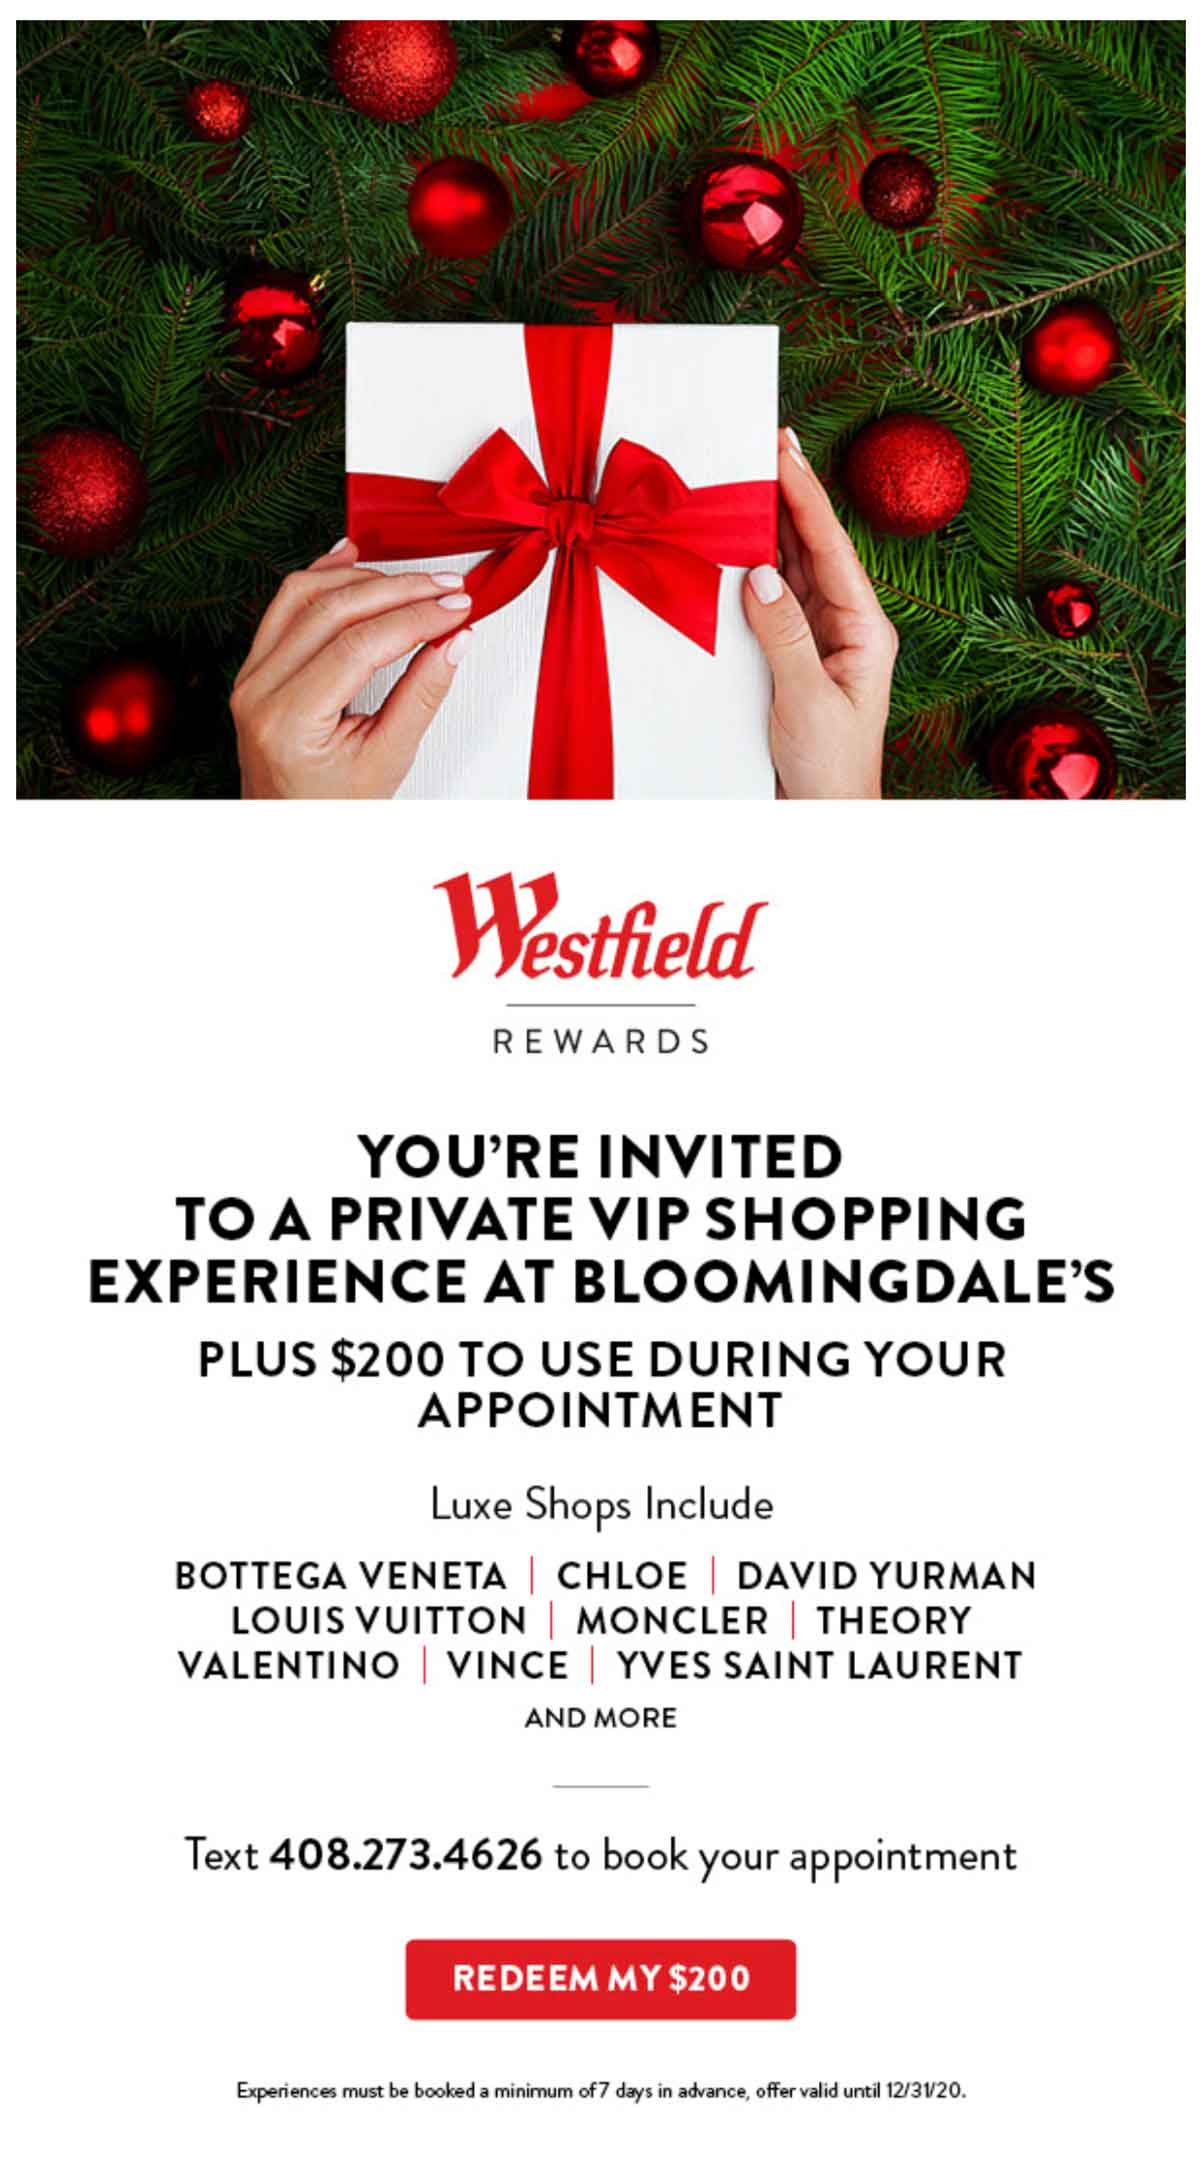 Westfield VIP Shopping